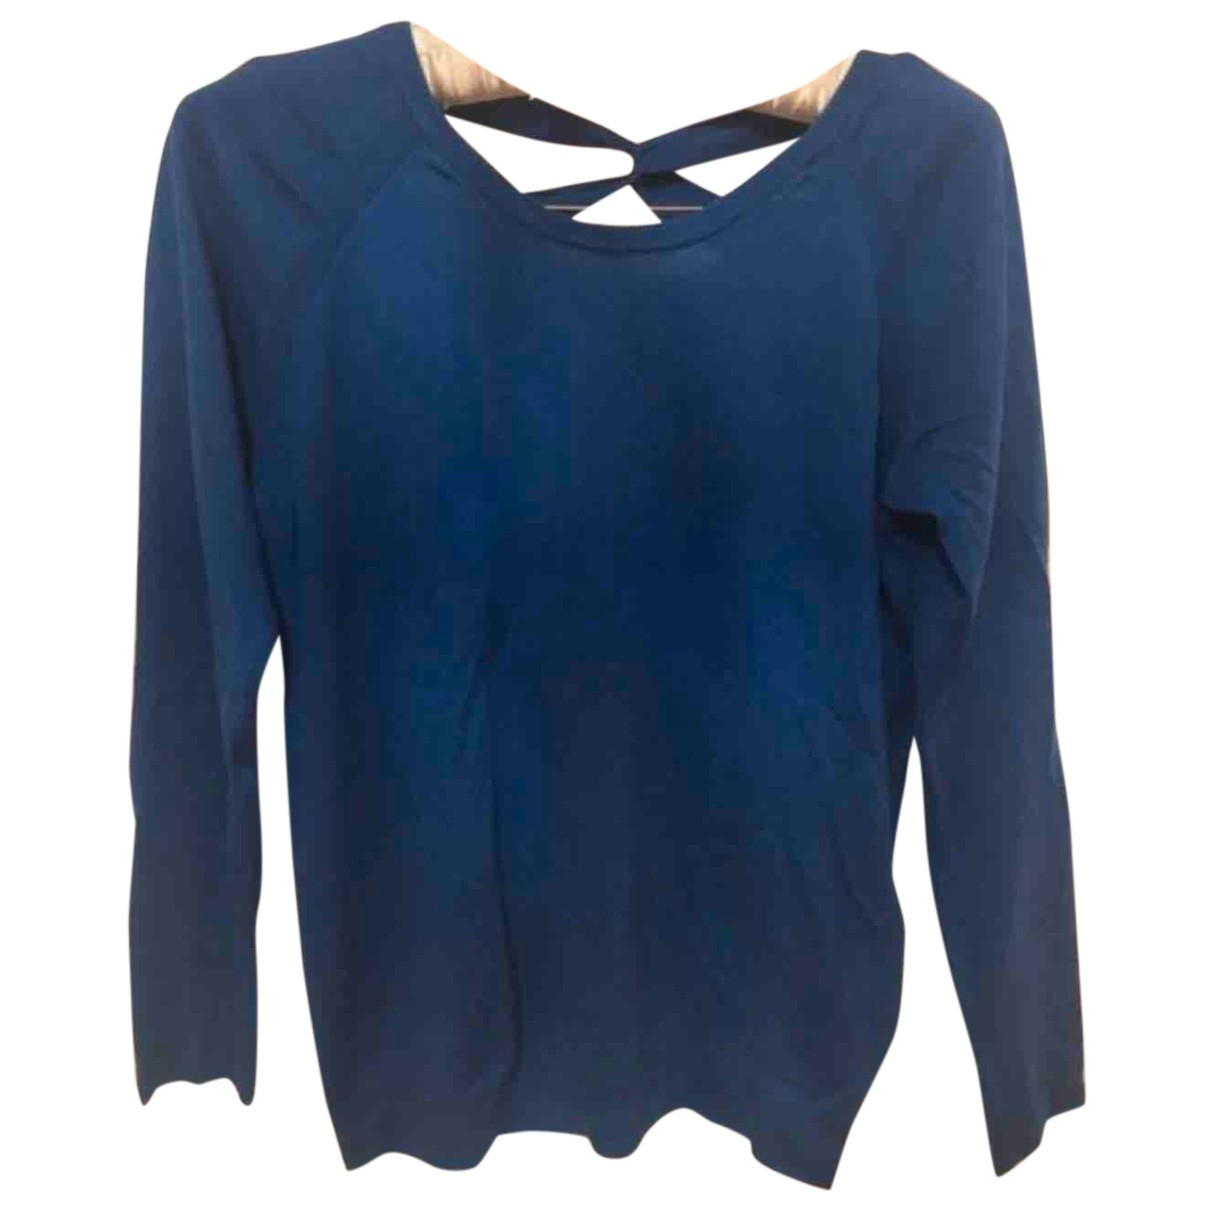 Sandro N Blue Cotton Knitwear for Women 36 FR